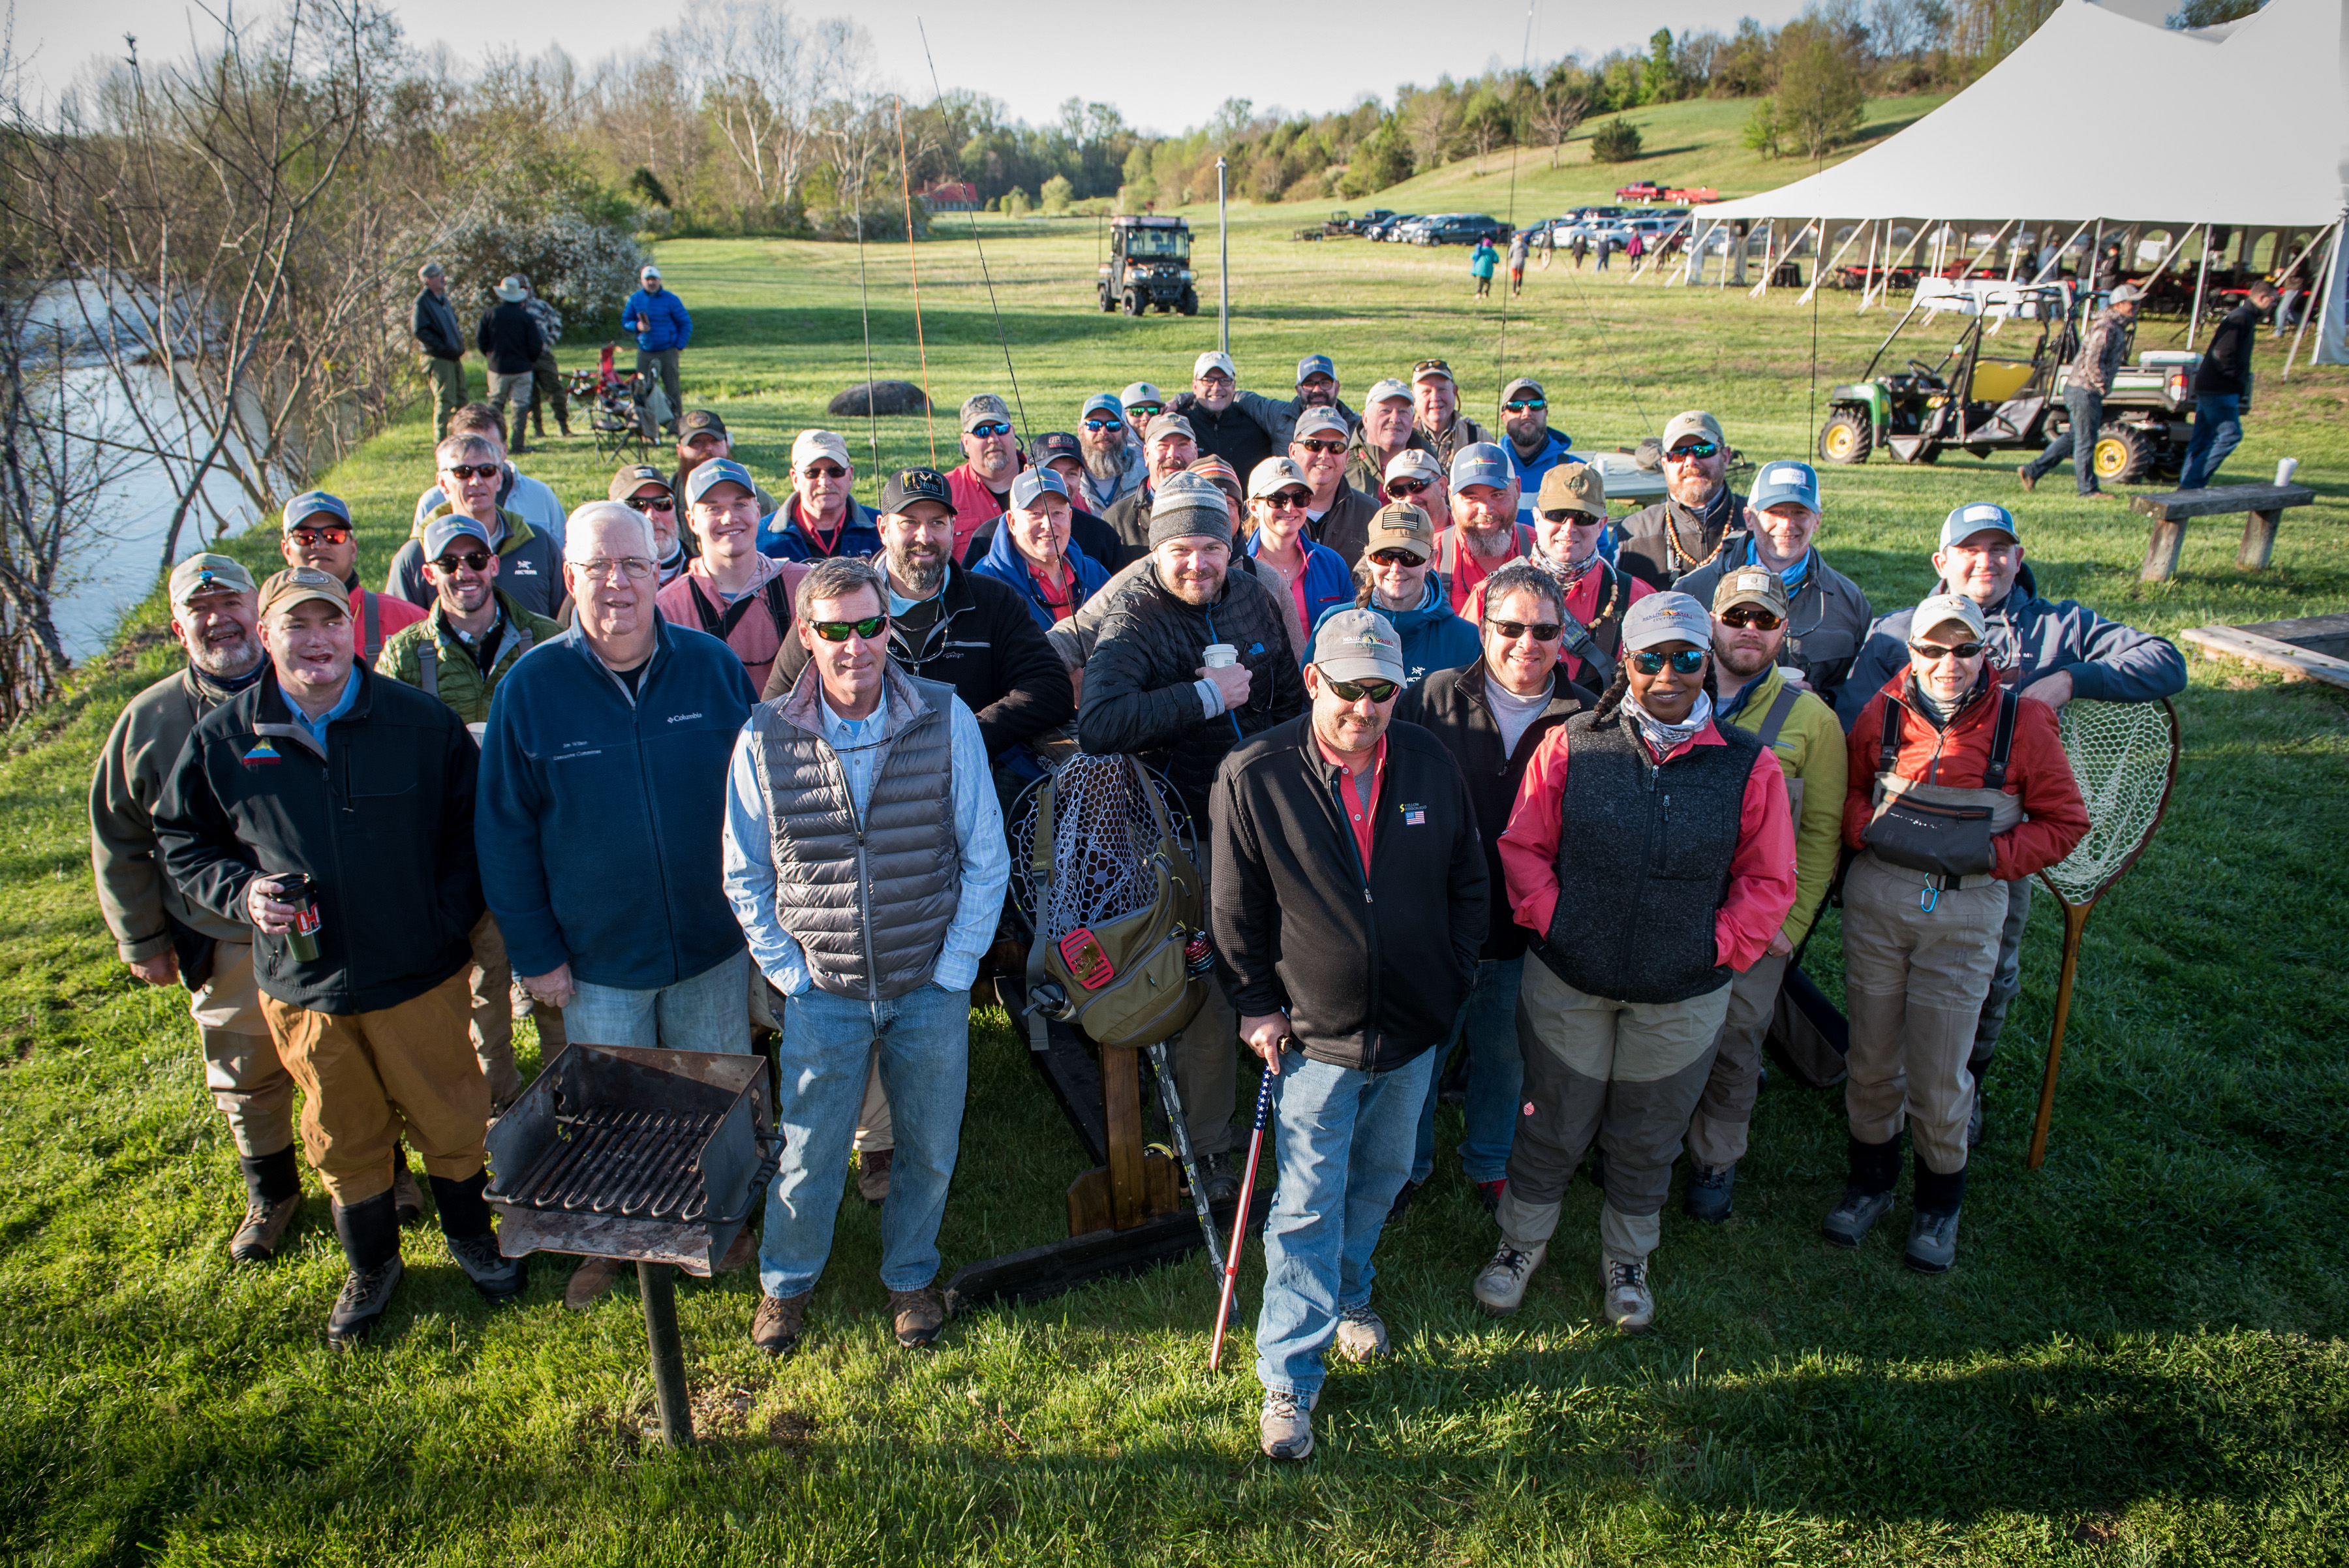 And the winners of the 12th Annual 2-Fly Tournament are….